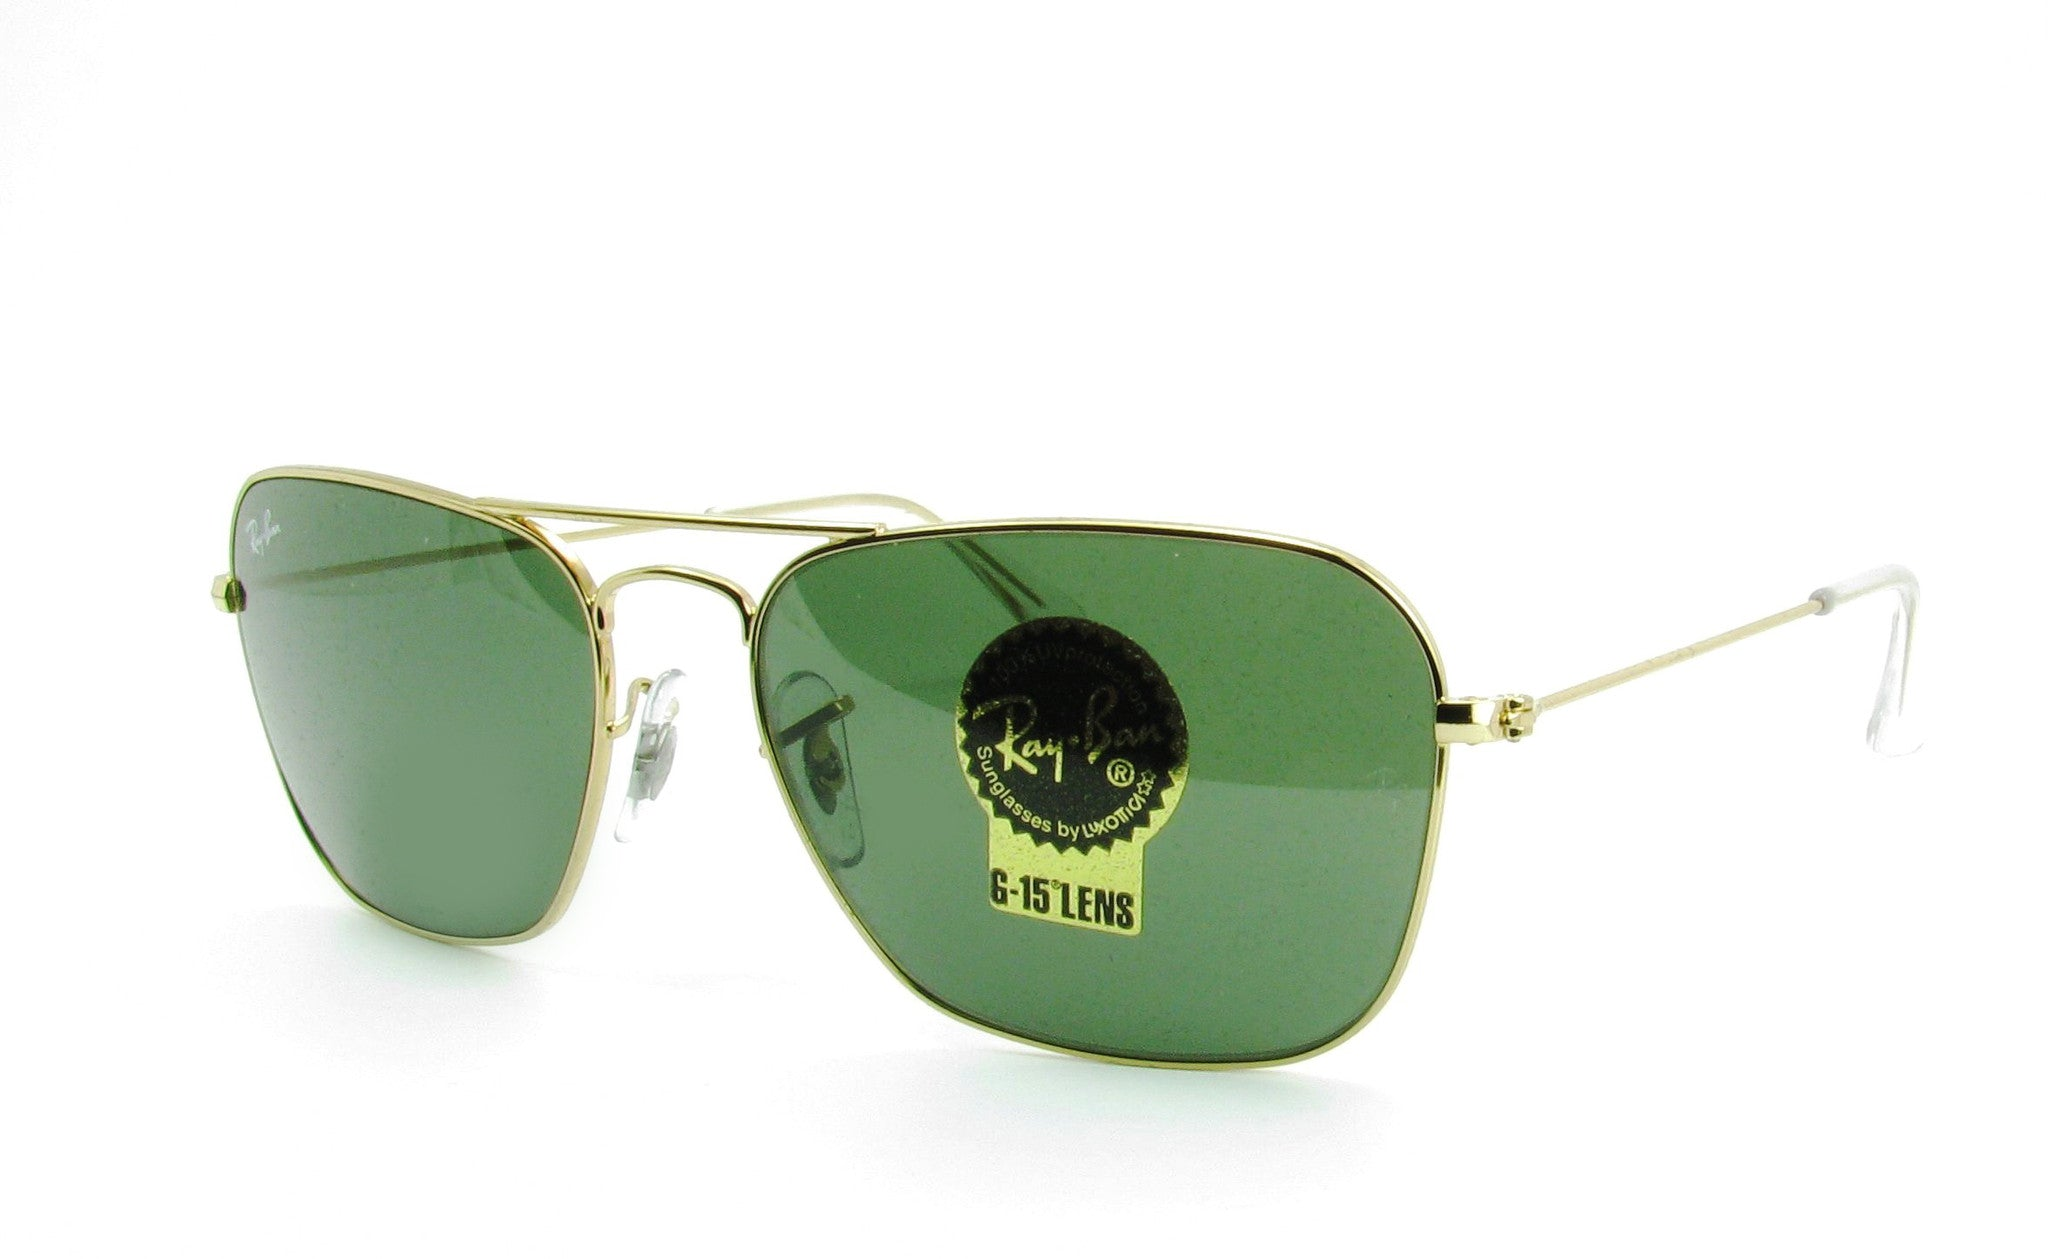 Ray Ban RB3136 Caravan Sunglasses